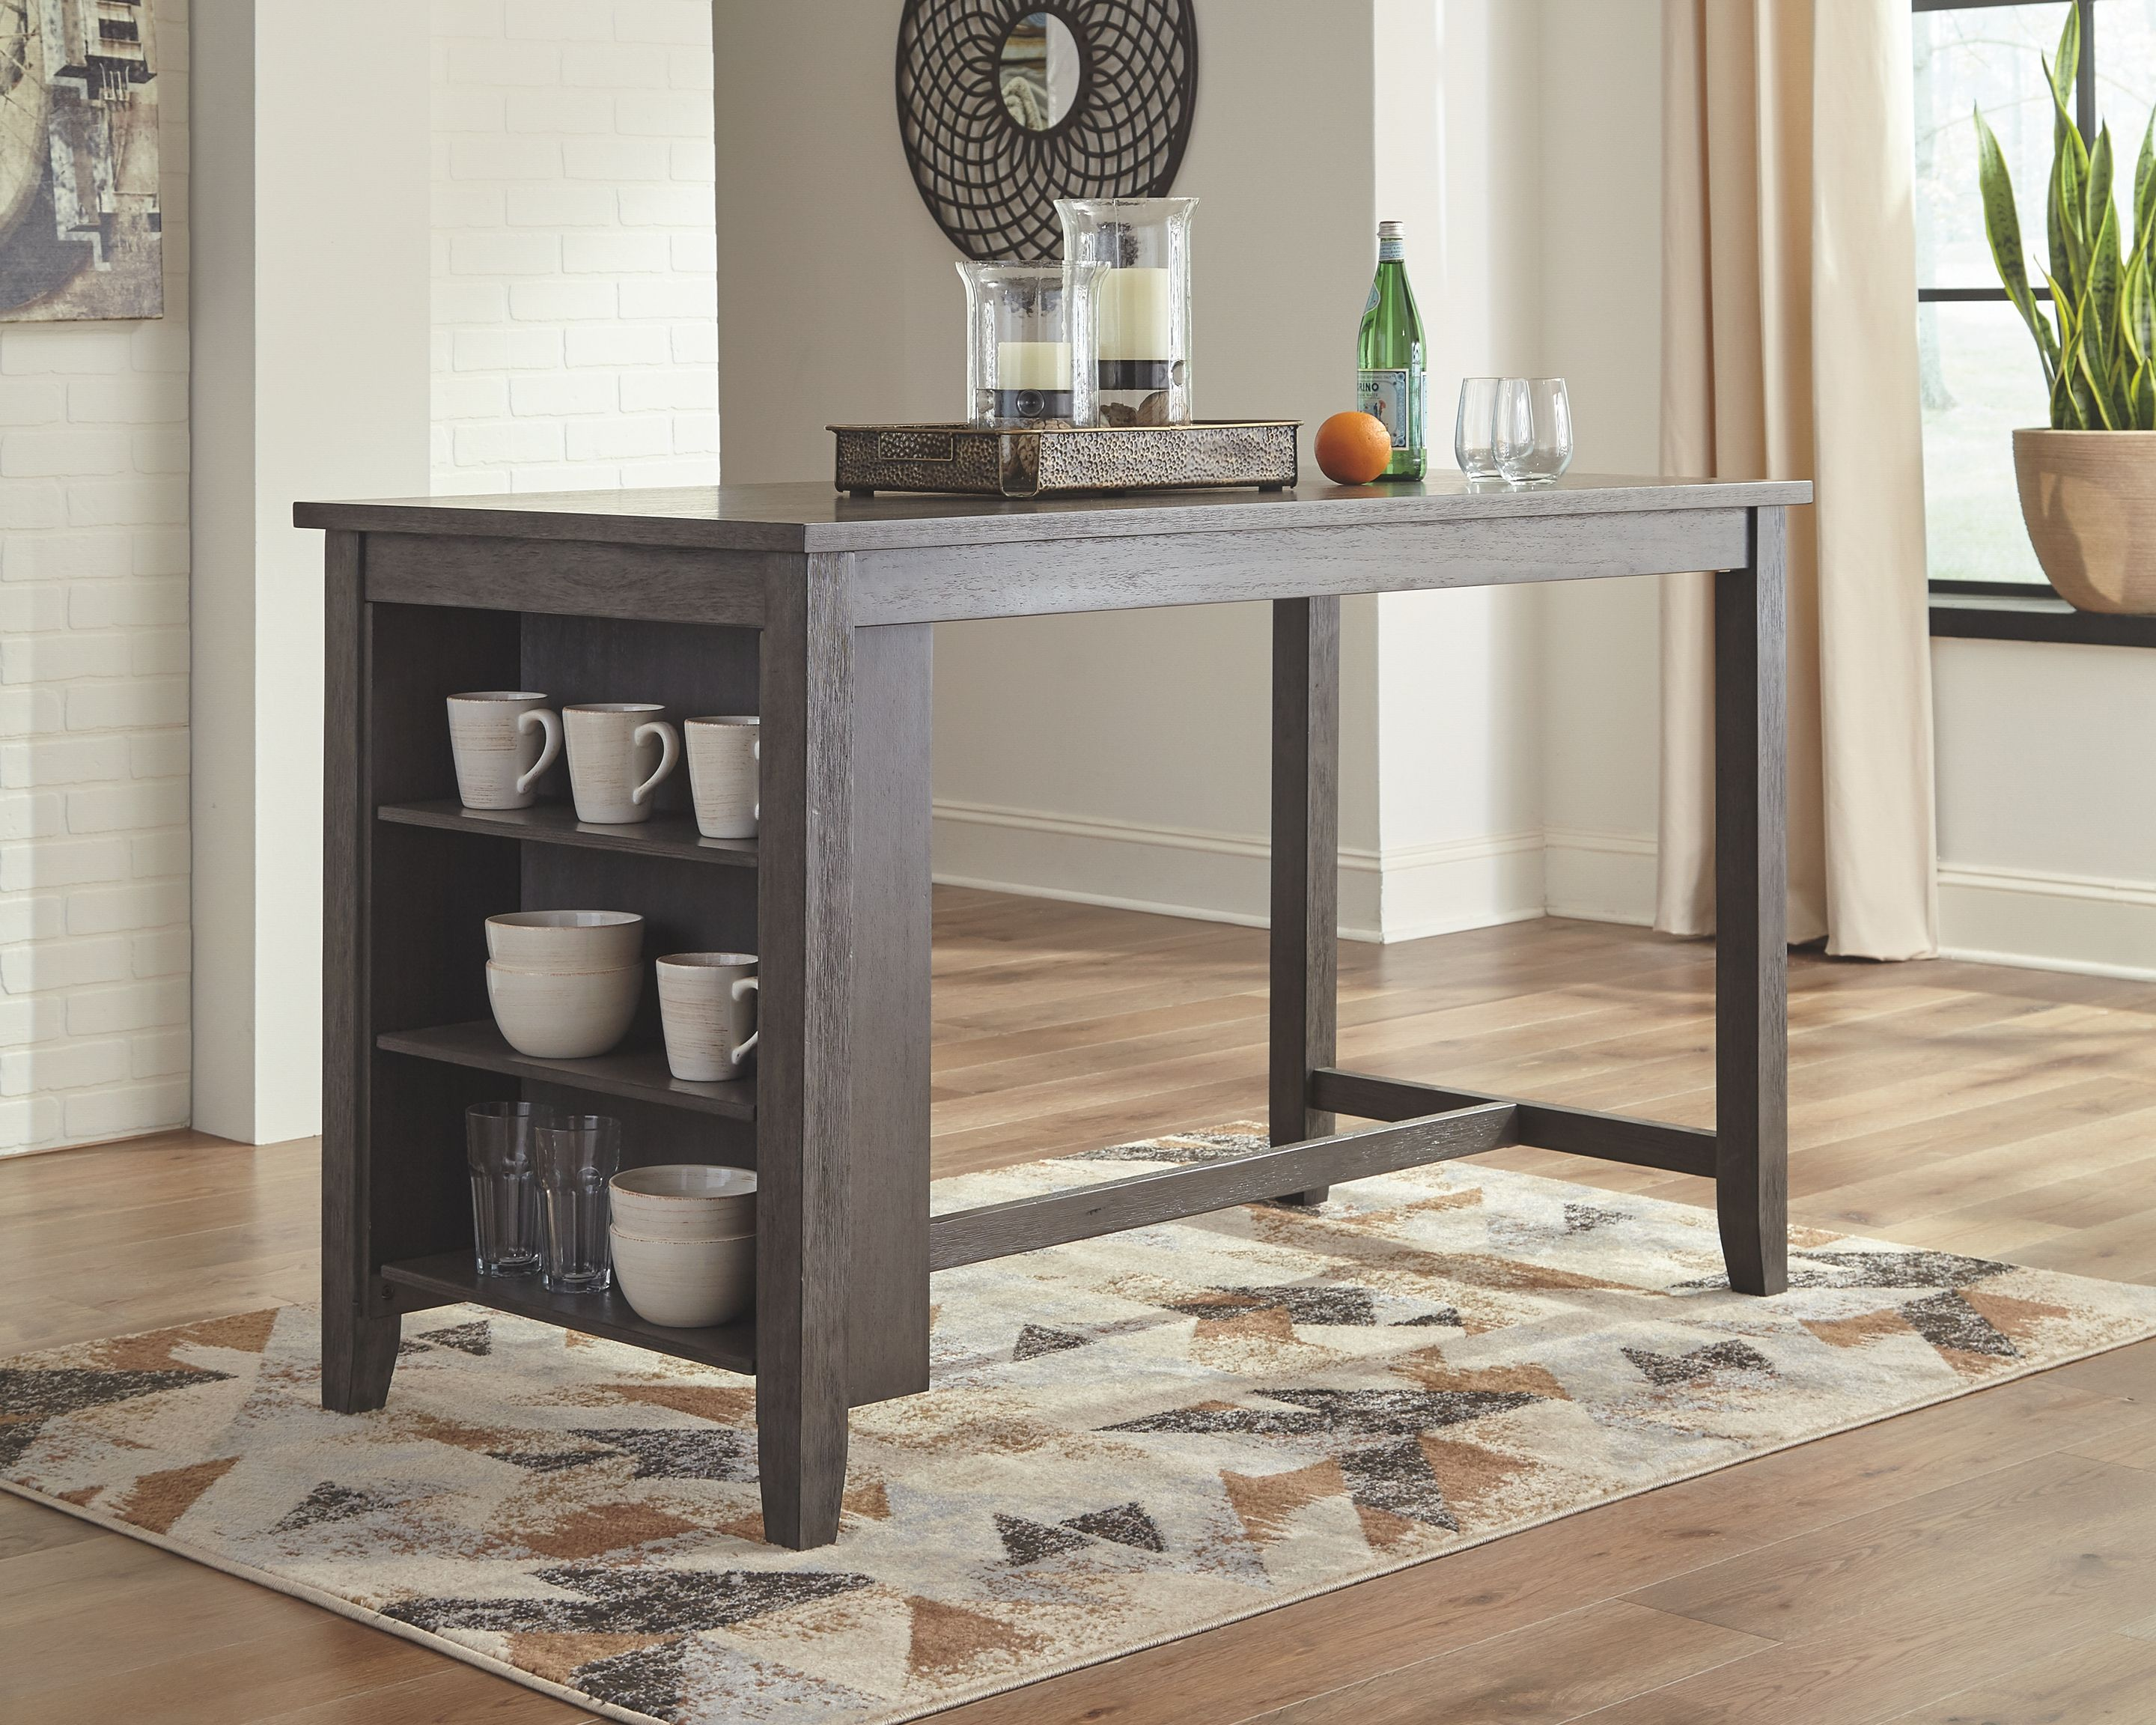 Caitbrook Counter Height Dining Room Table Gray In 2020 Dining